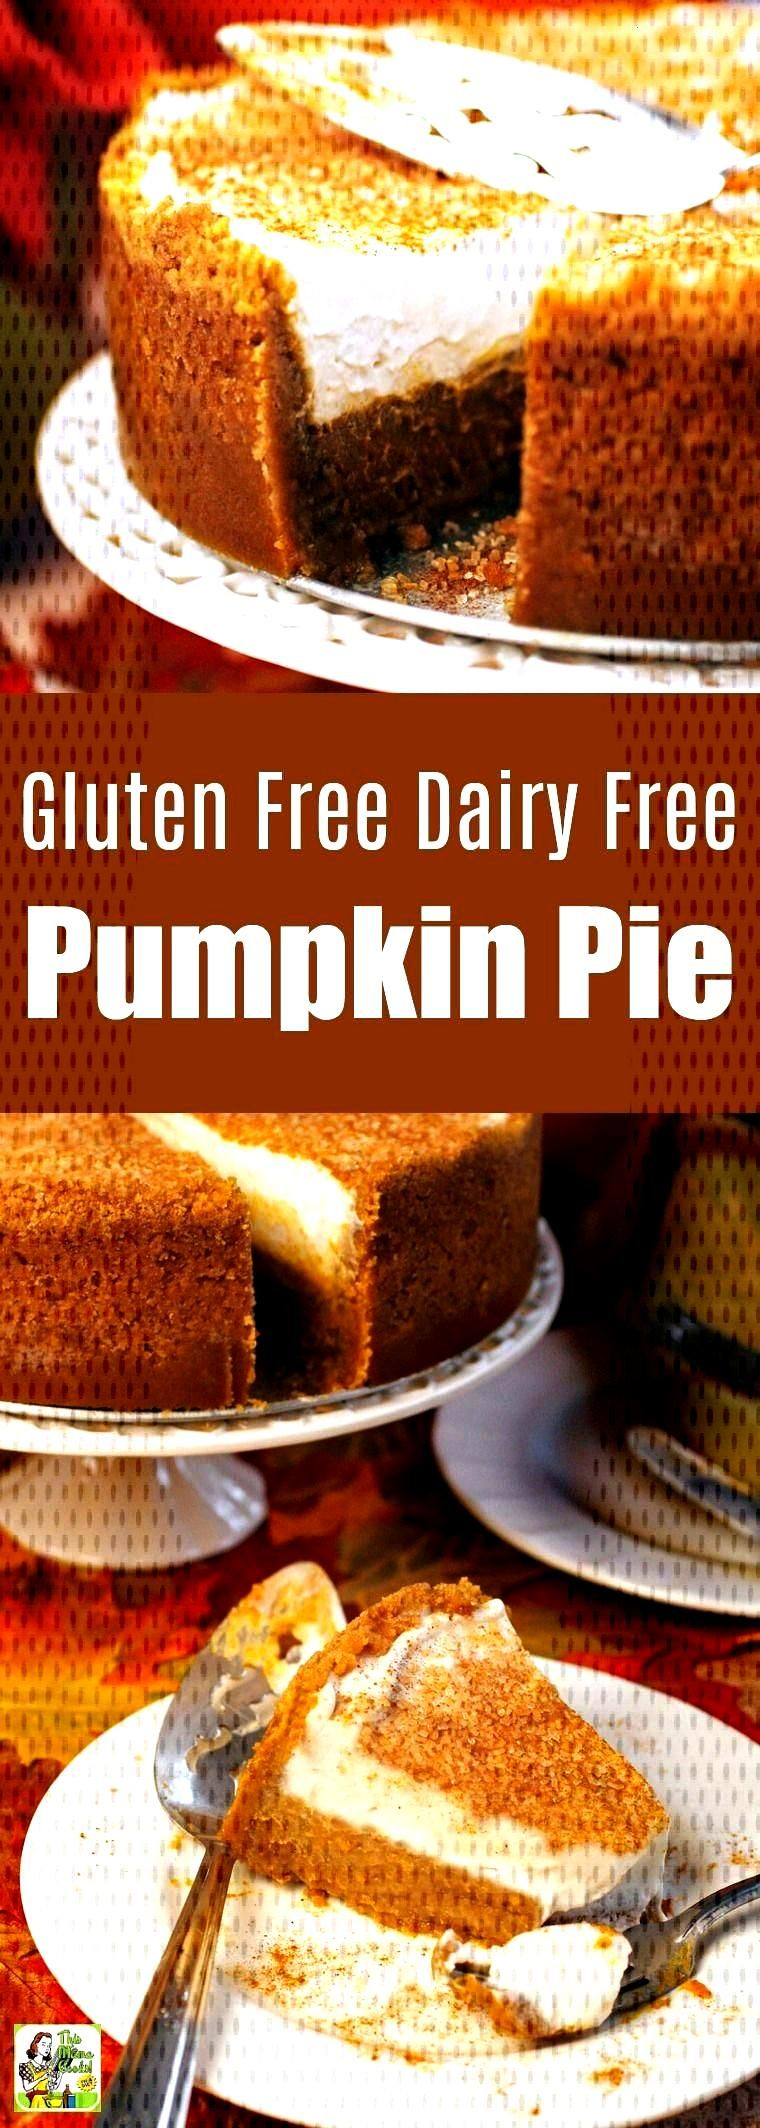 Gluten Free Dairy Free Pumpkin Pie - Food // Cakes + Pies -You can find Pies and more on our websit